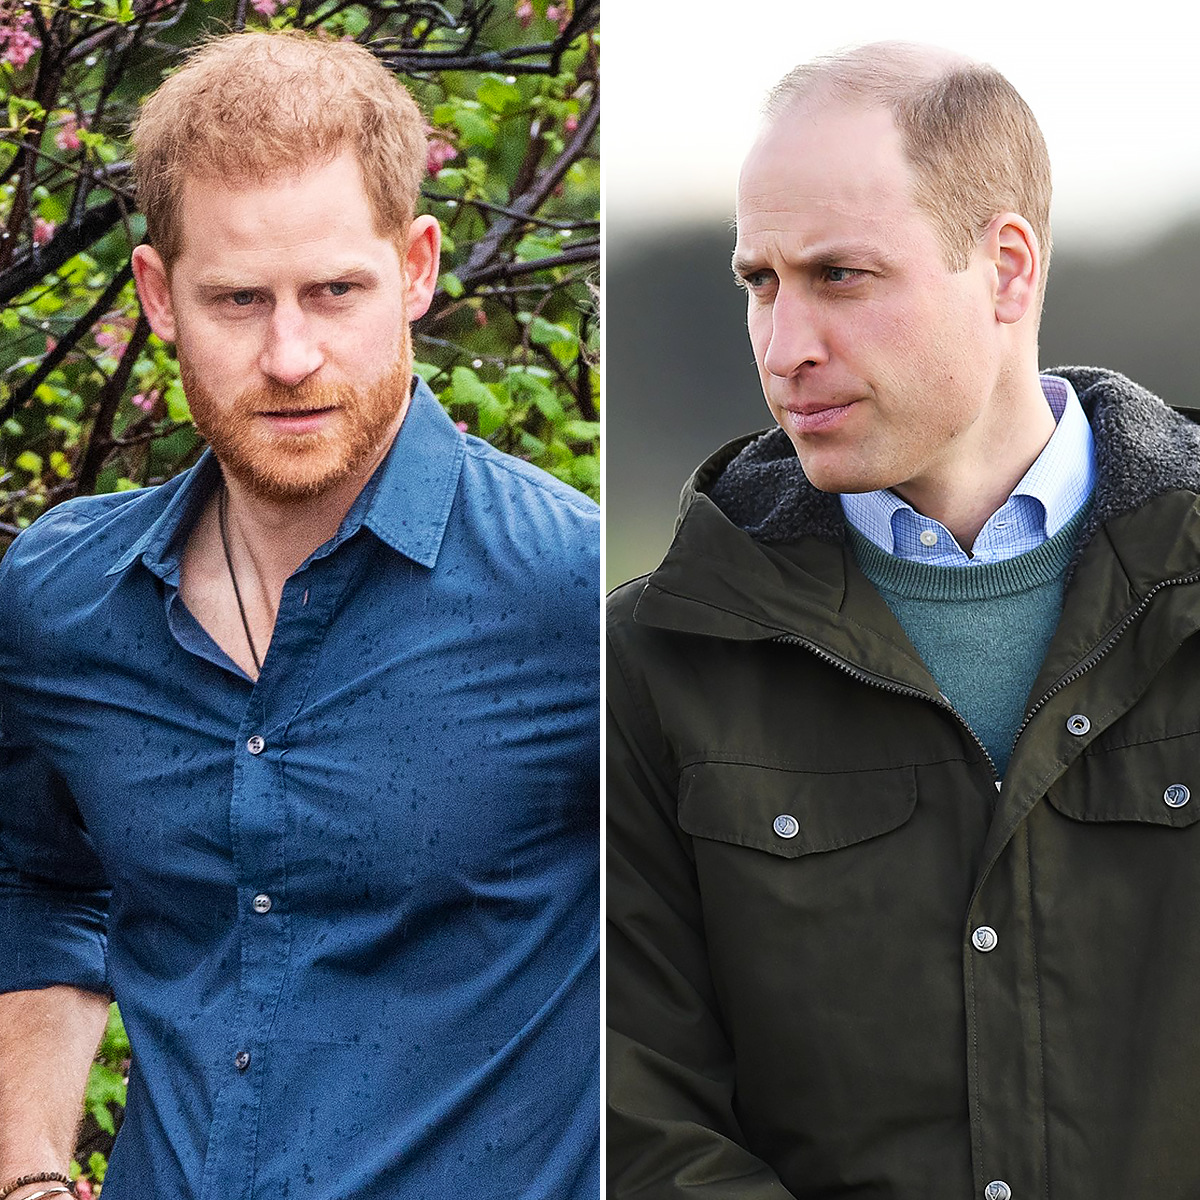 Prince Harry Prince William Still Feel Anger Towards Each Other